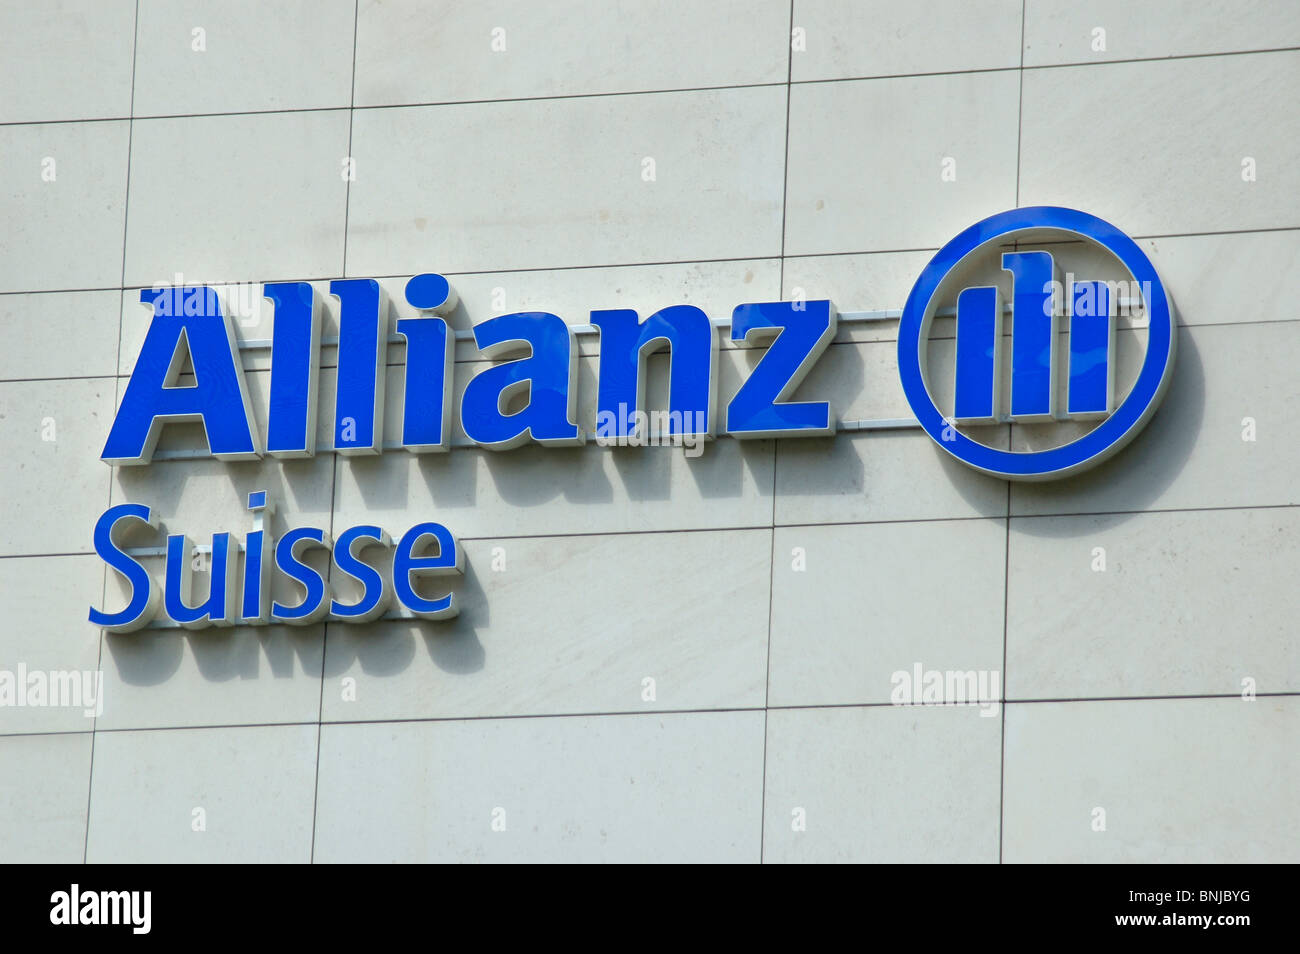 Allianz Suisse Switzerland building investment finance business group insurance group security safety insure protect - Stock Image